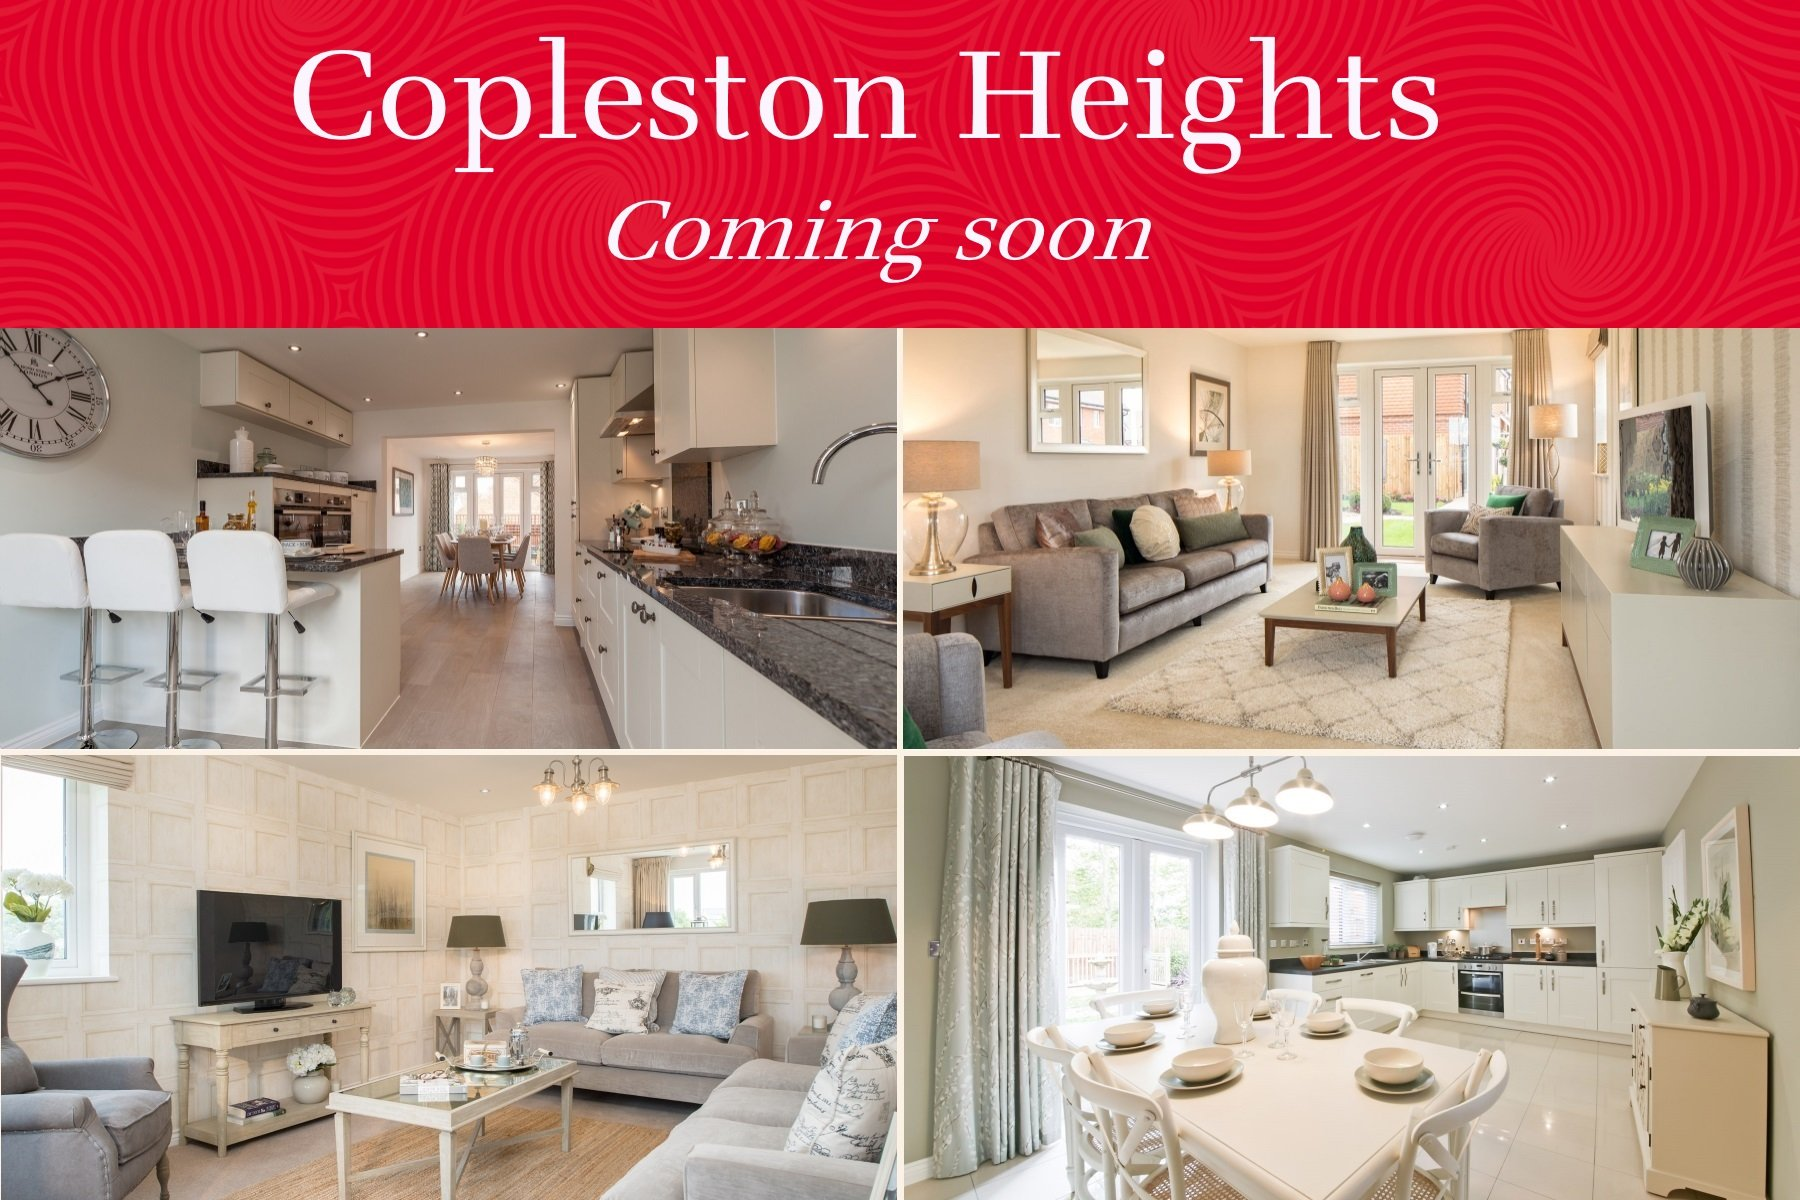 Copleston Heights - coming soon